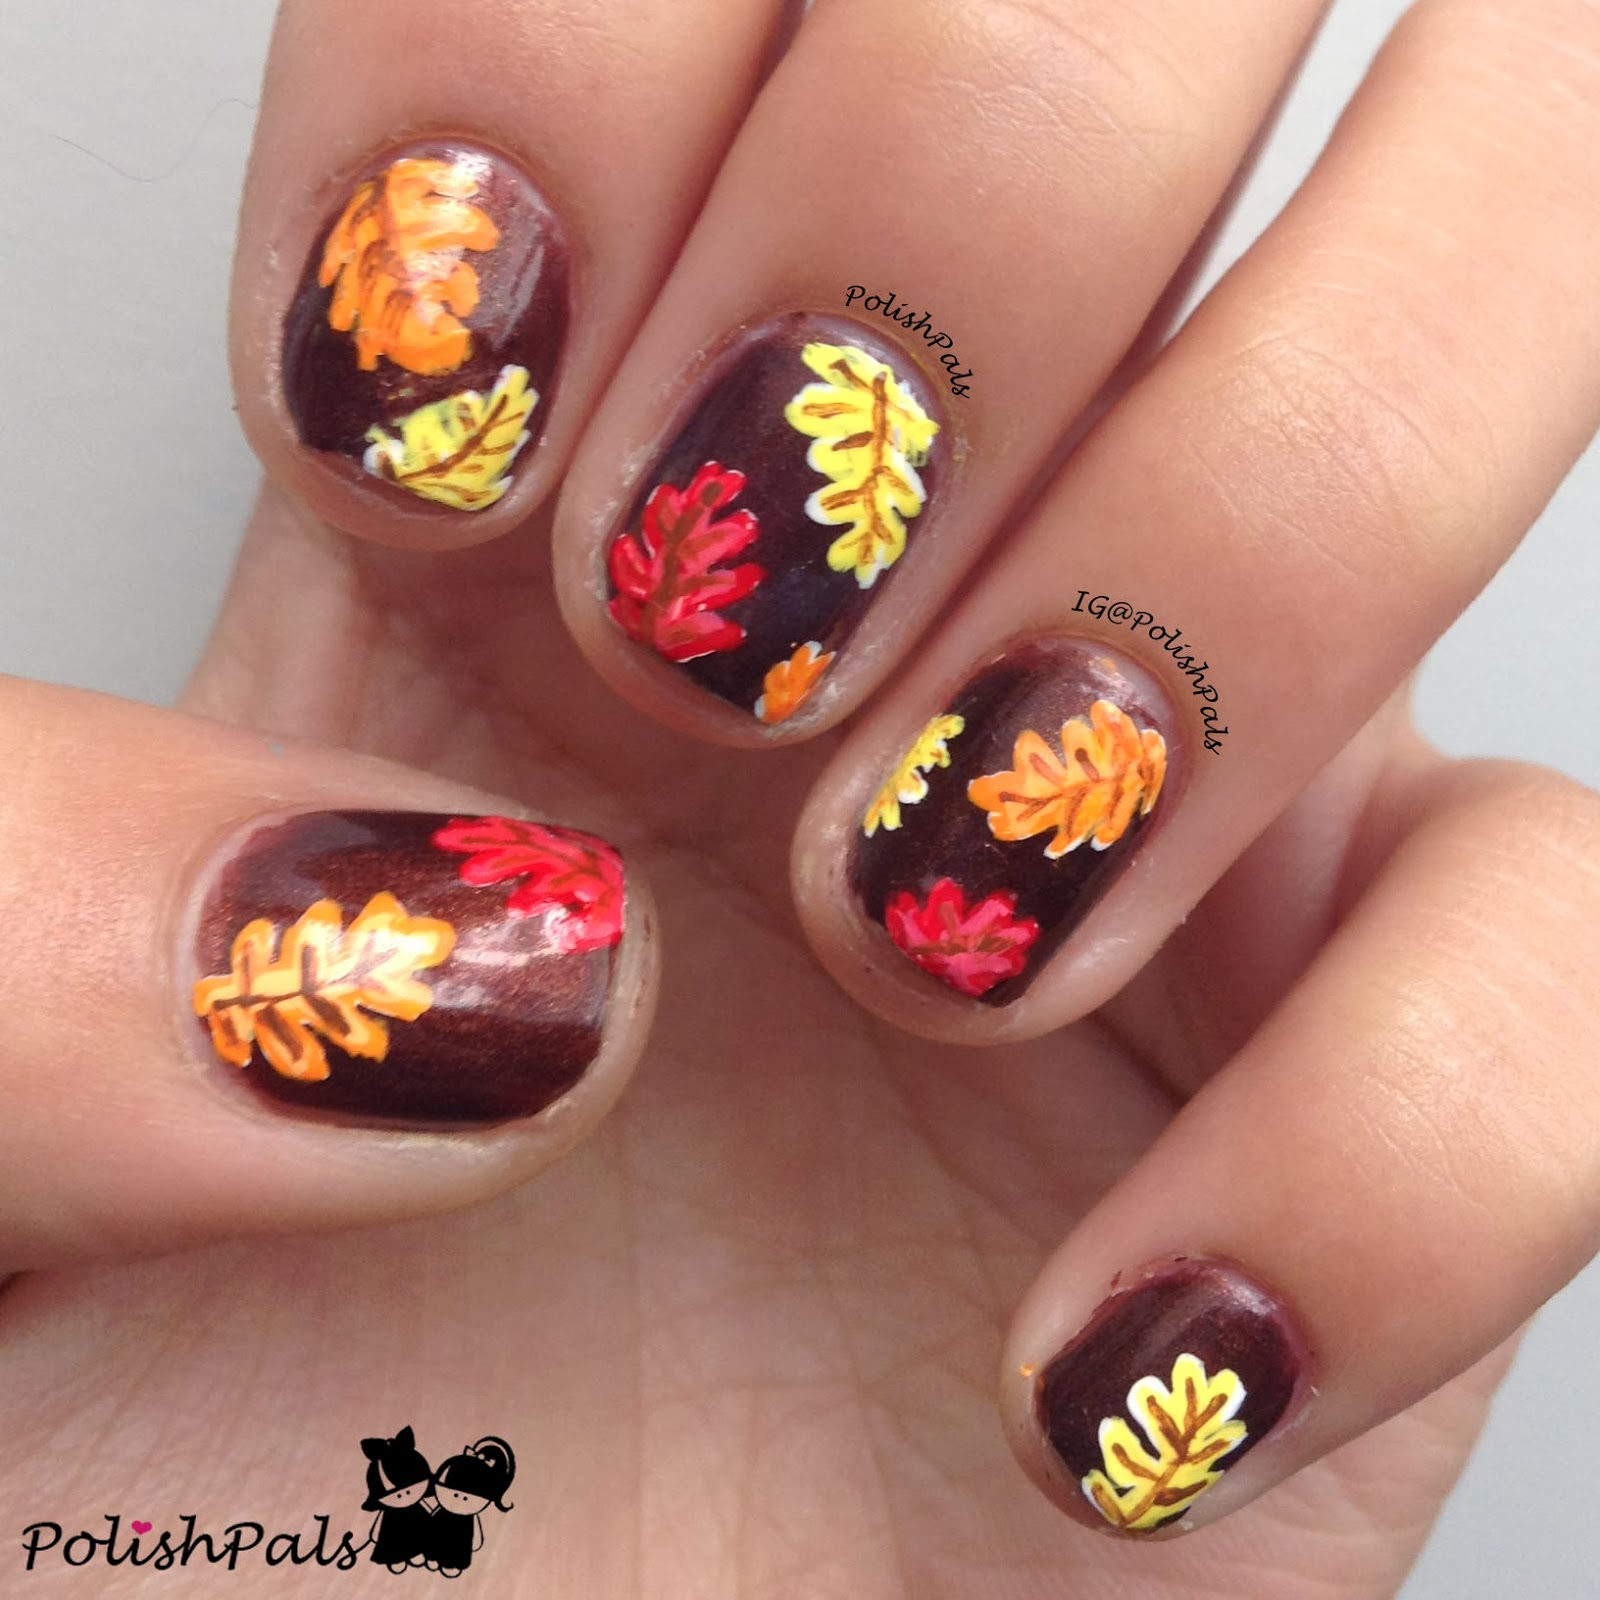 Thatleanne Firey Autumn Leaves Nail Art: Polish Pals: I'm Fine With Fall